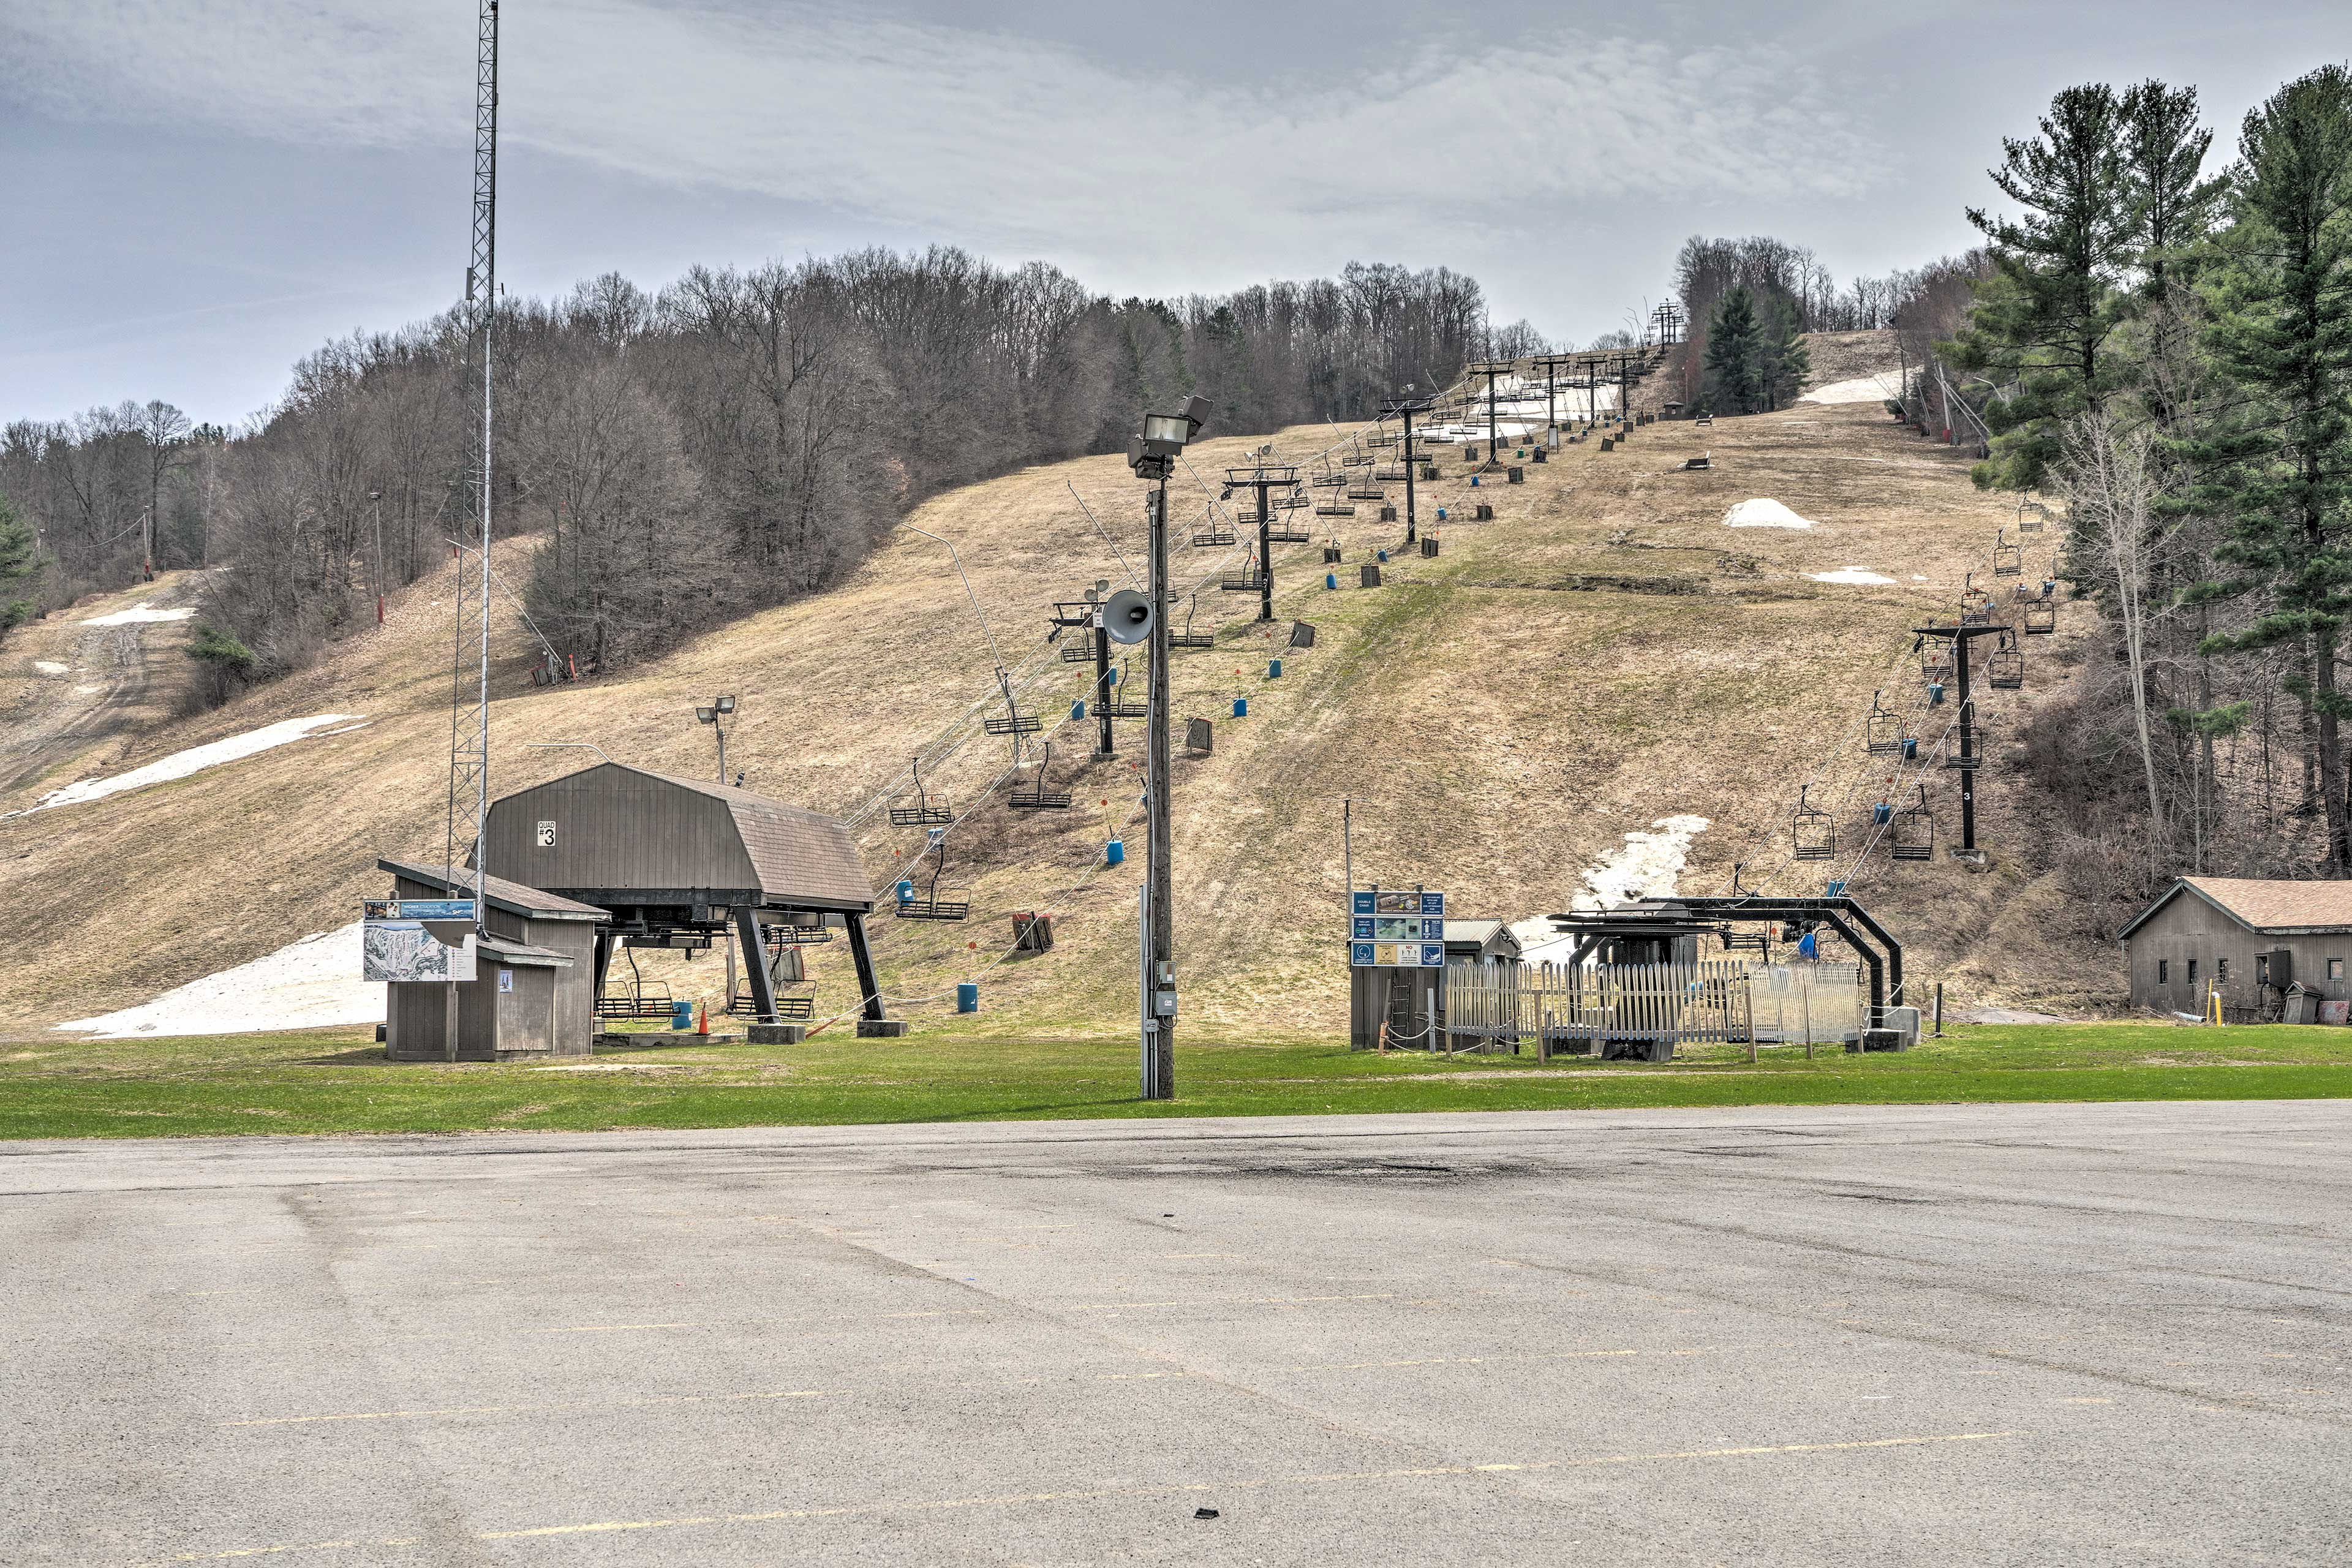 This resort features slopes for all skill levels!